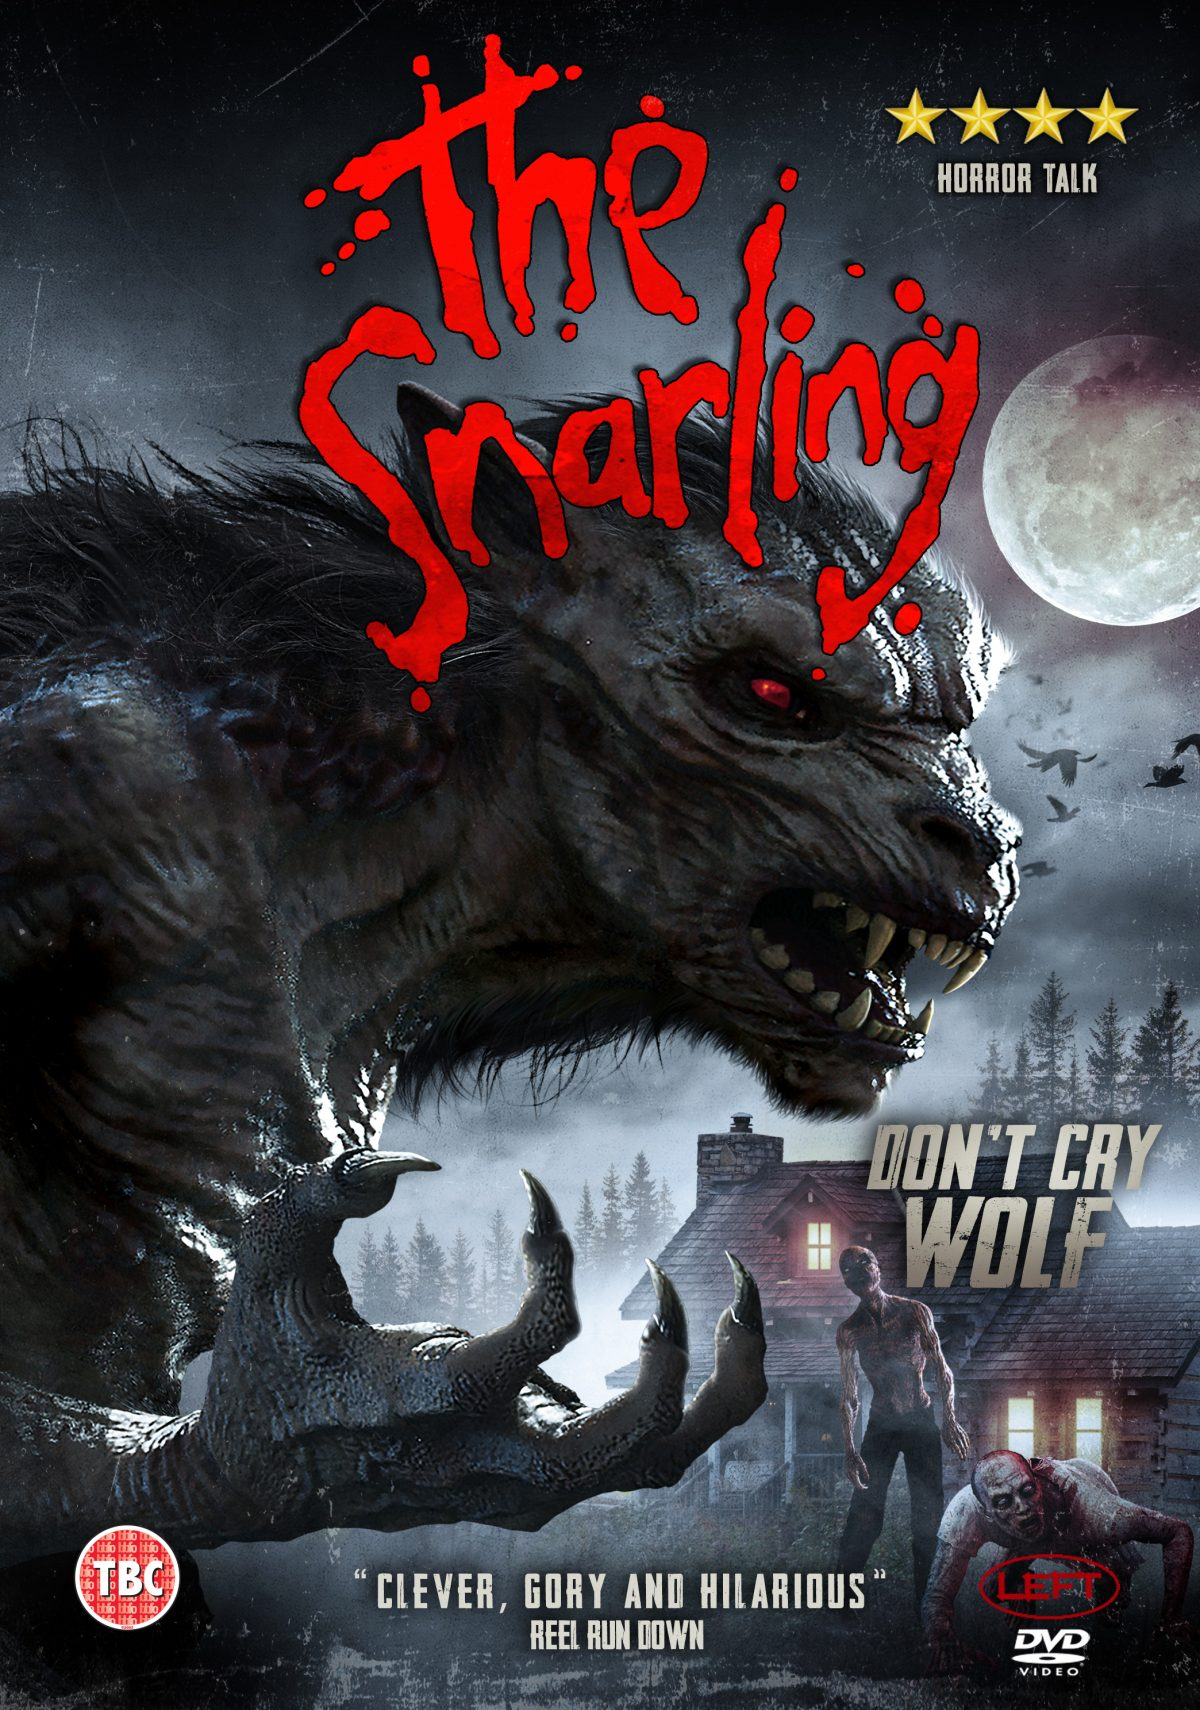 WIN a The Snarling DVD with WitchFinder and Blazing Minds